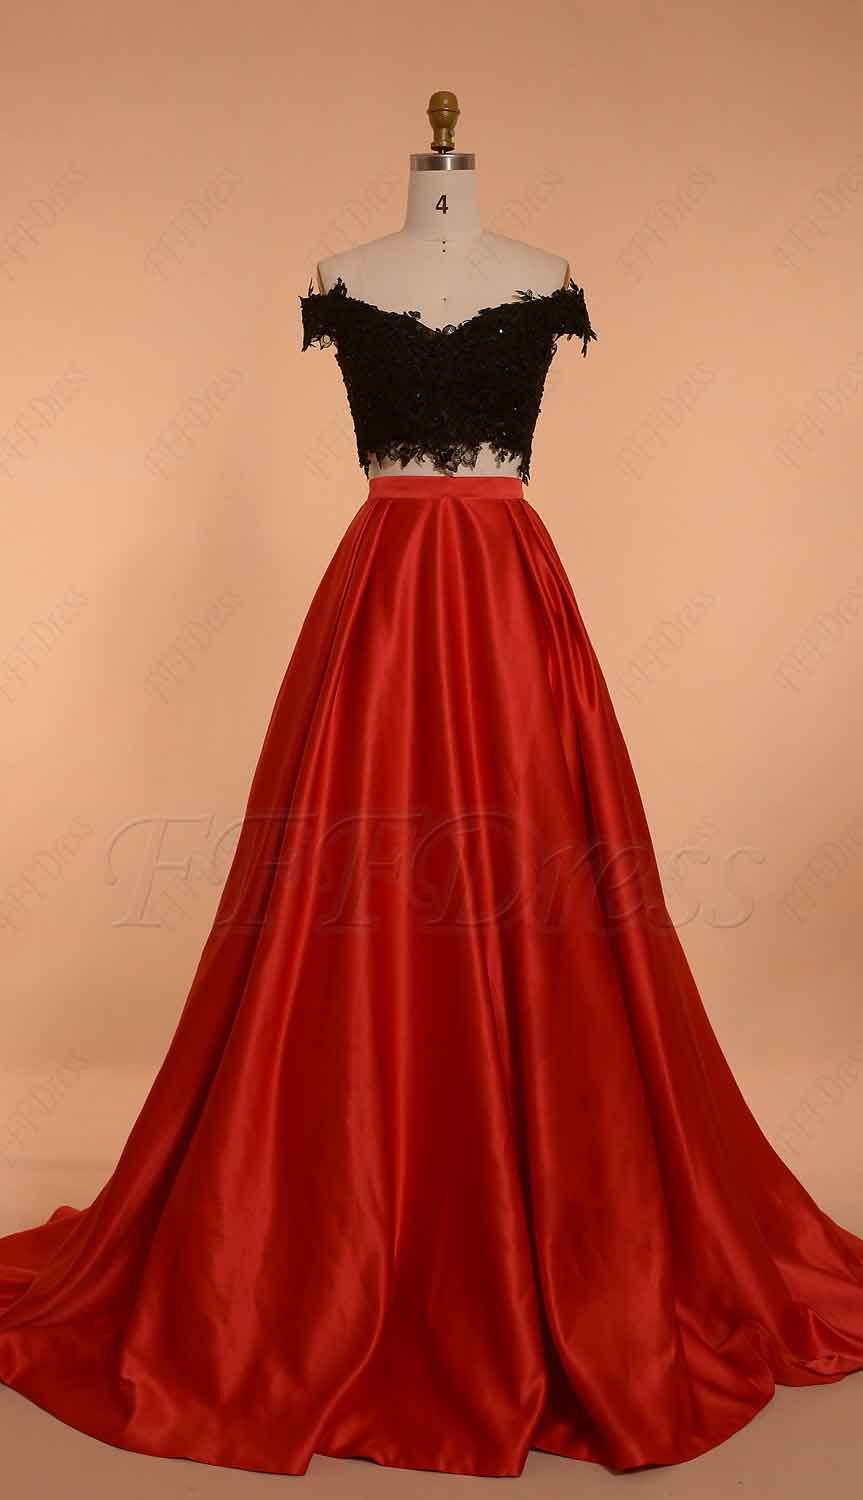 Off the shoulder two piece prom dress ball gown red black in